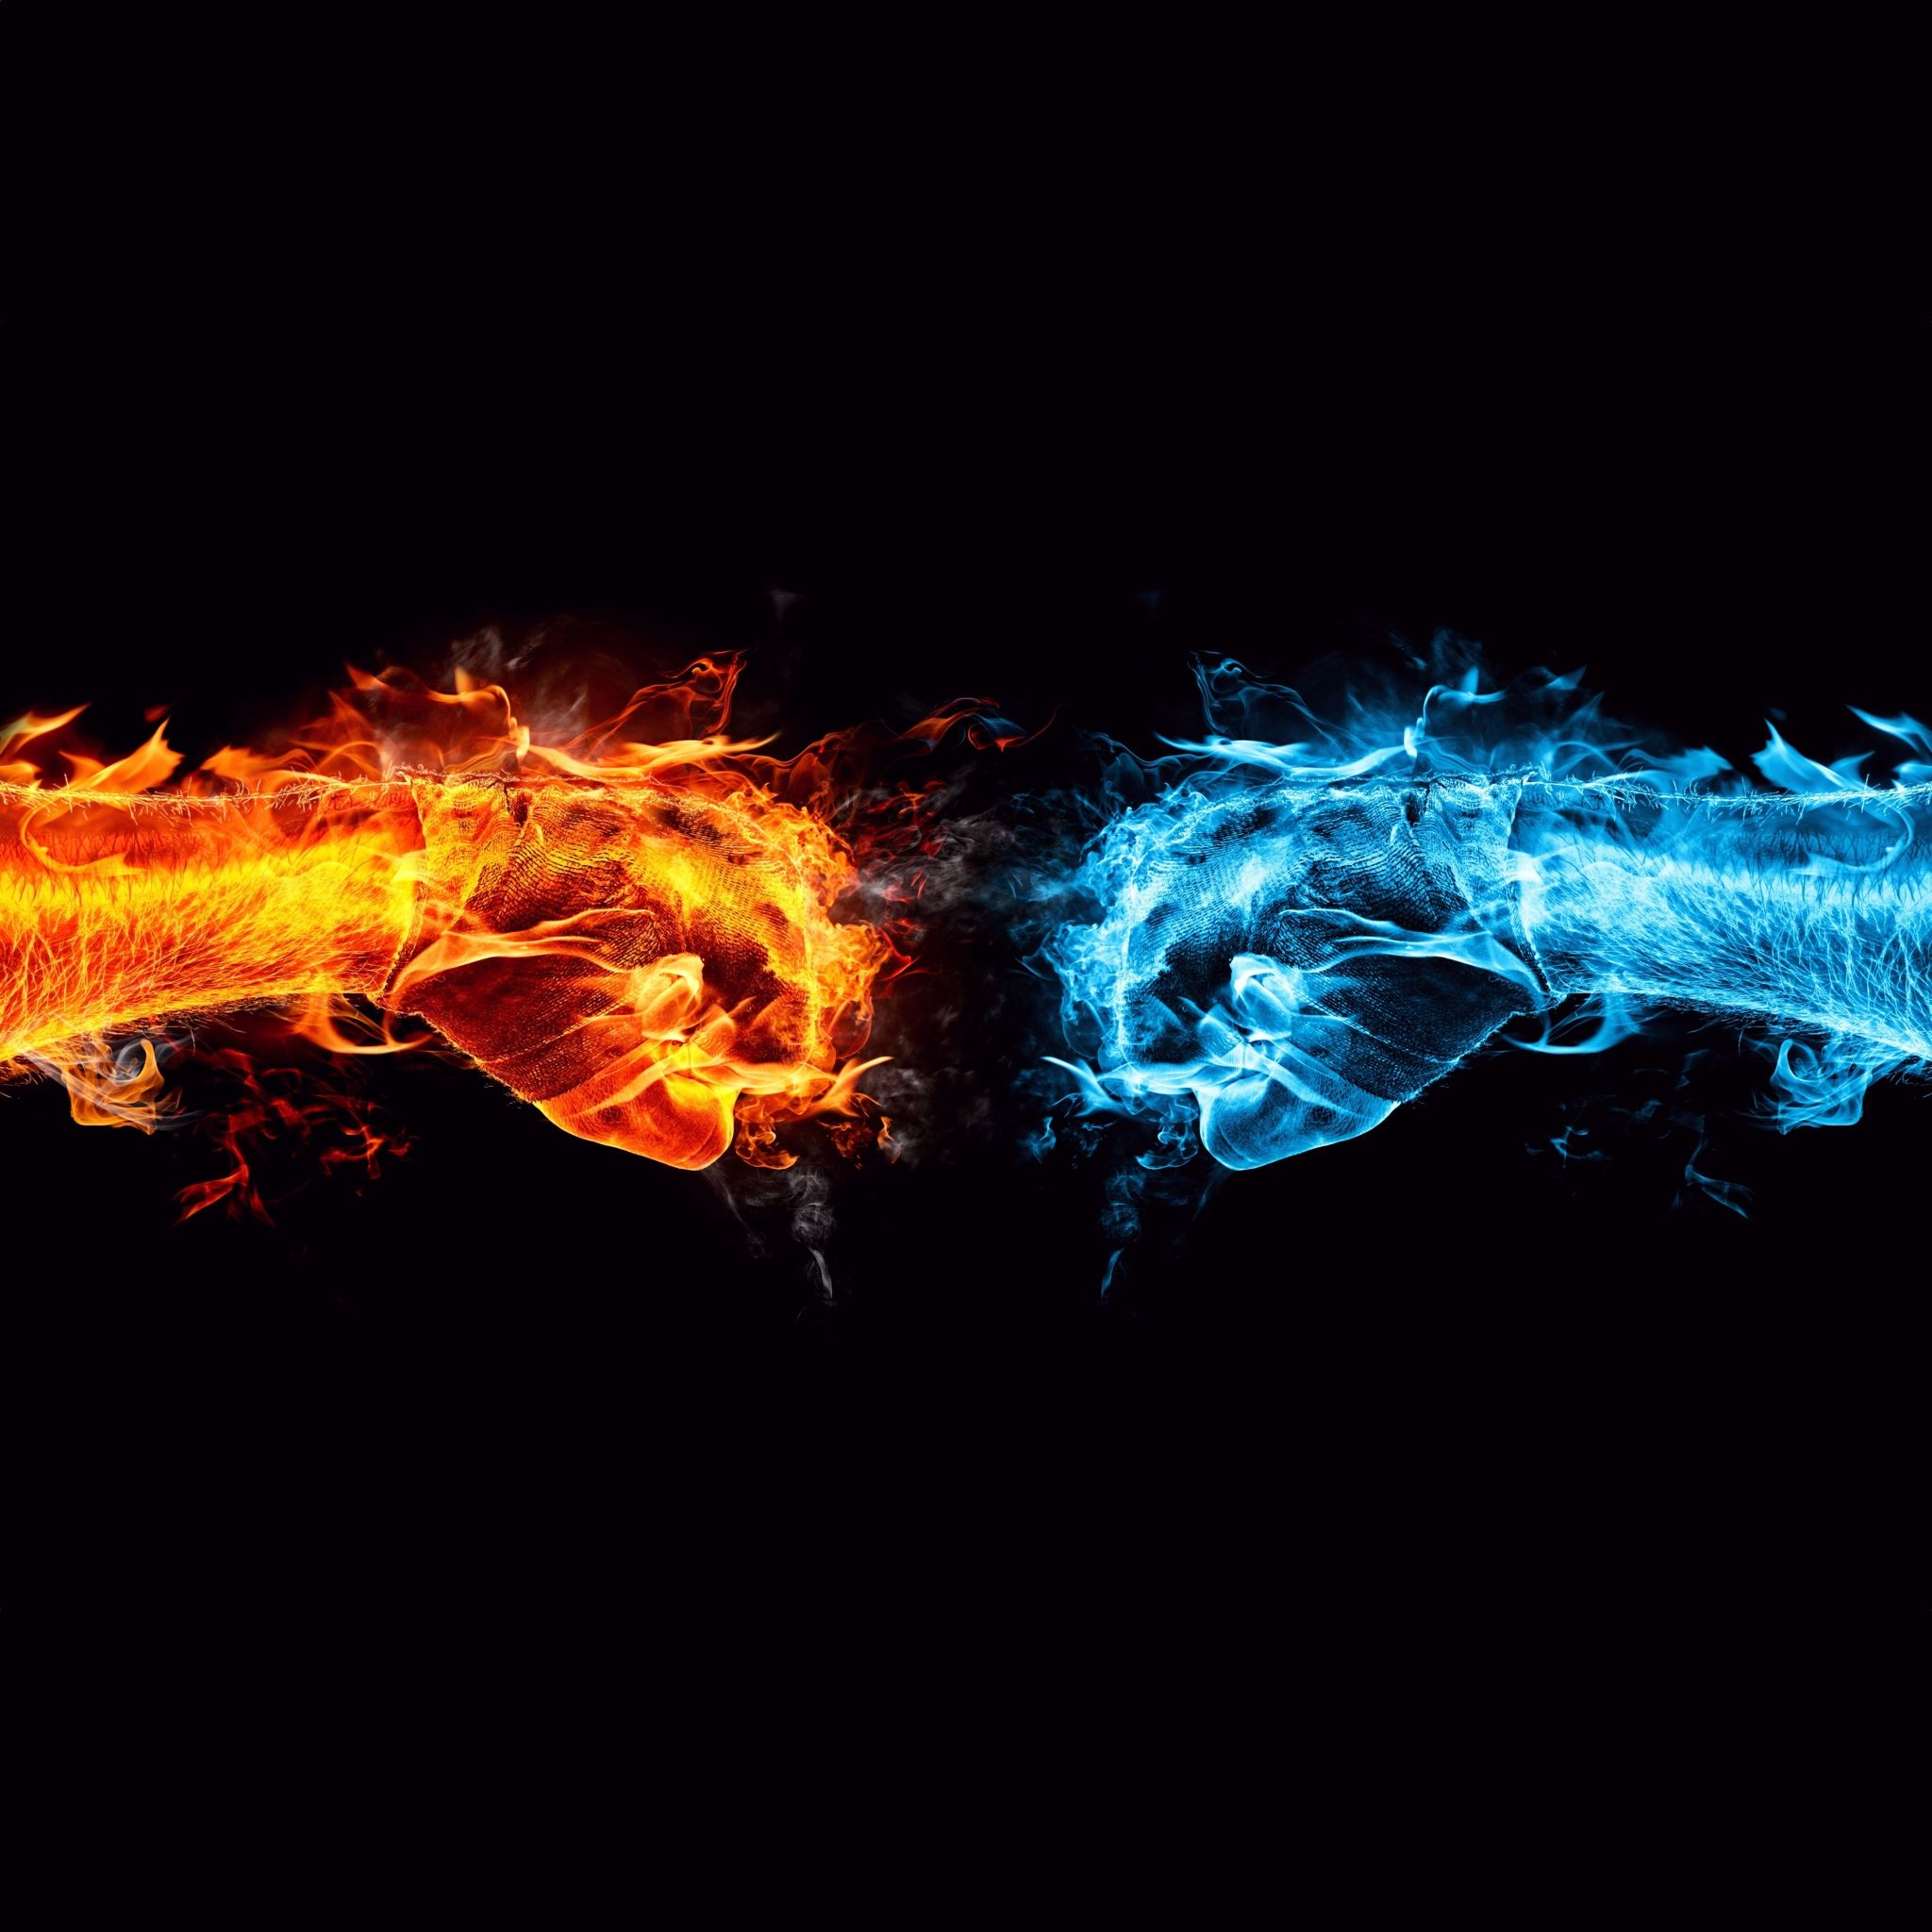 Fire Ice Fists Ipad Air Wallpaper Download Iphone